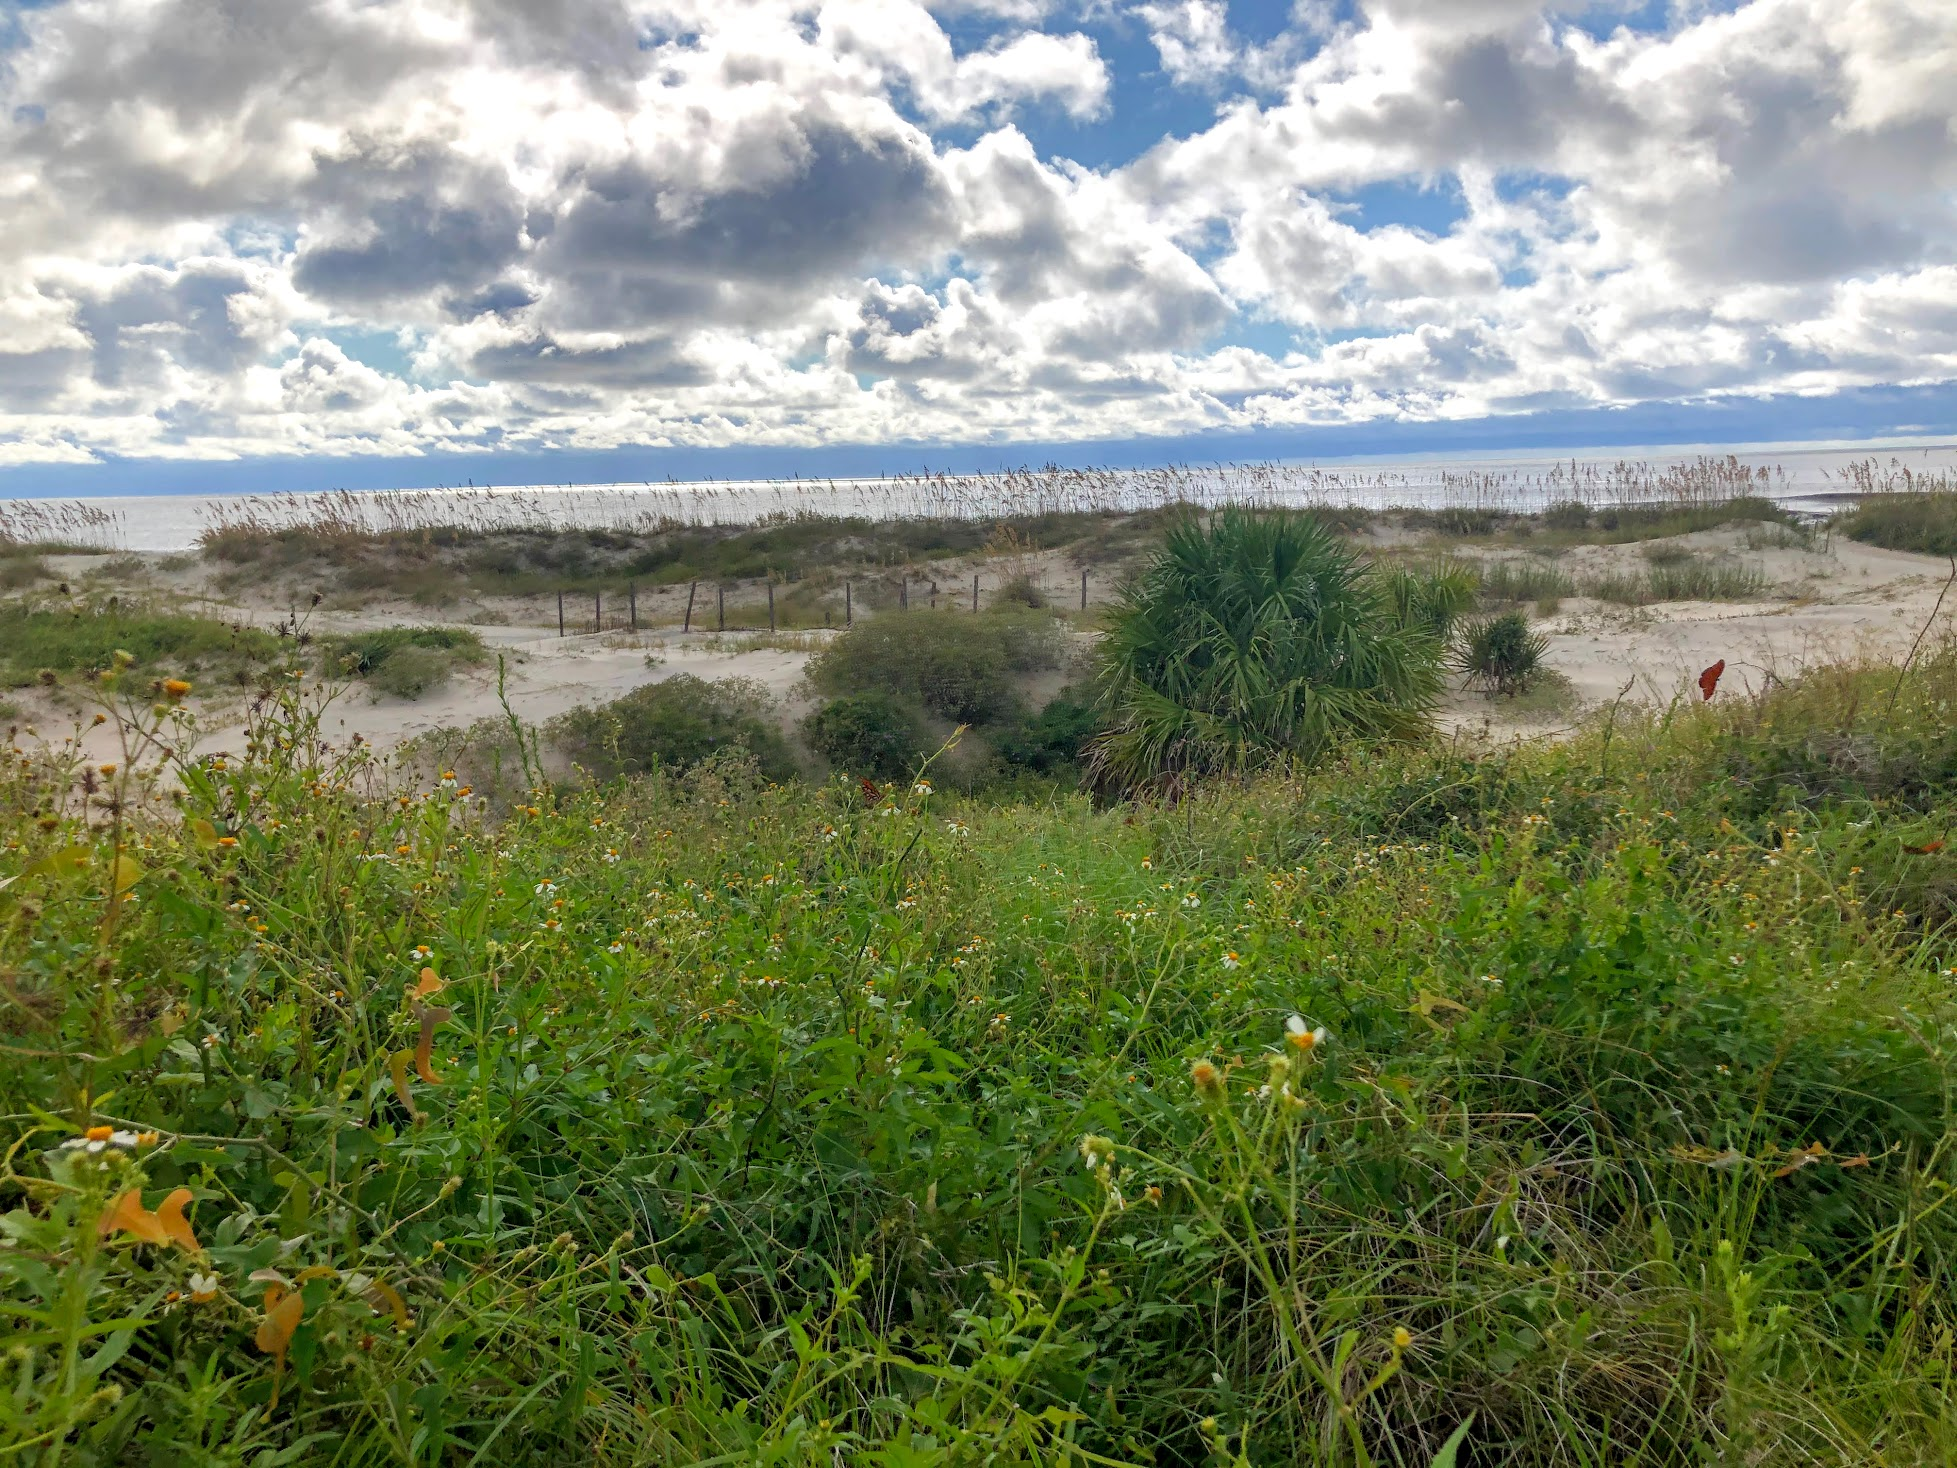 How to Spend a Day on Jekyll Island, GA